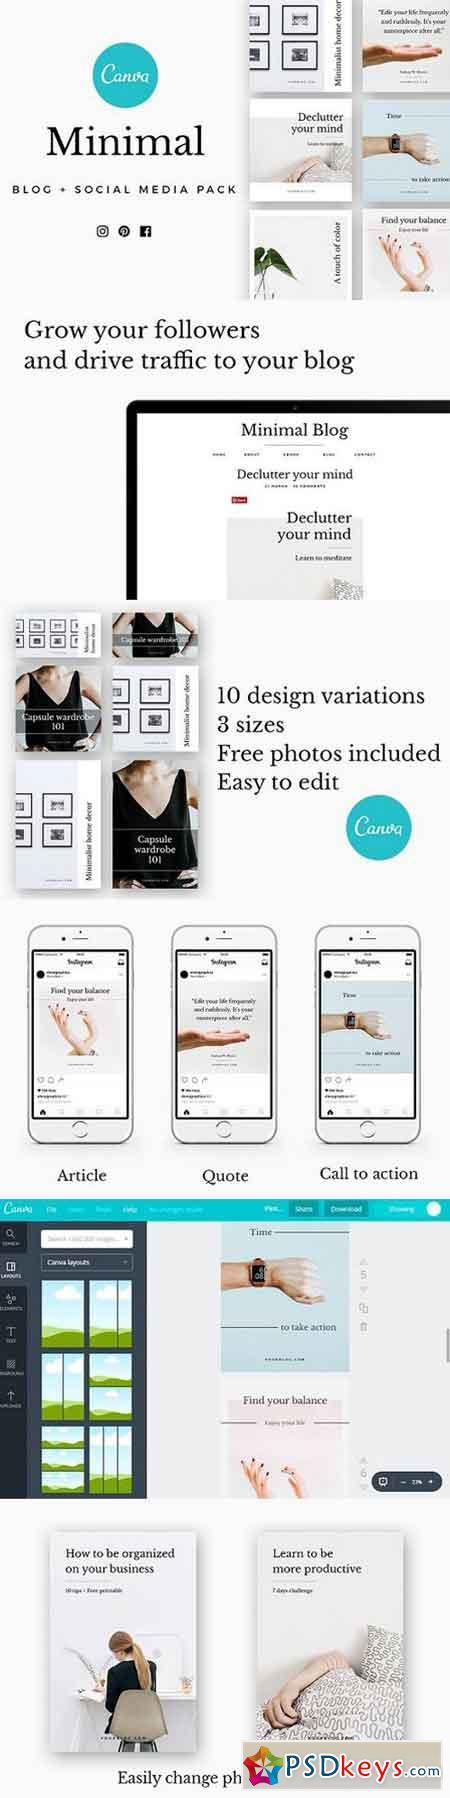 CANVA Minimal Social Media Pack 1663542